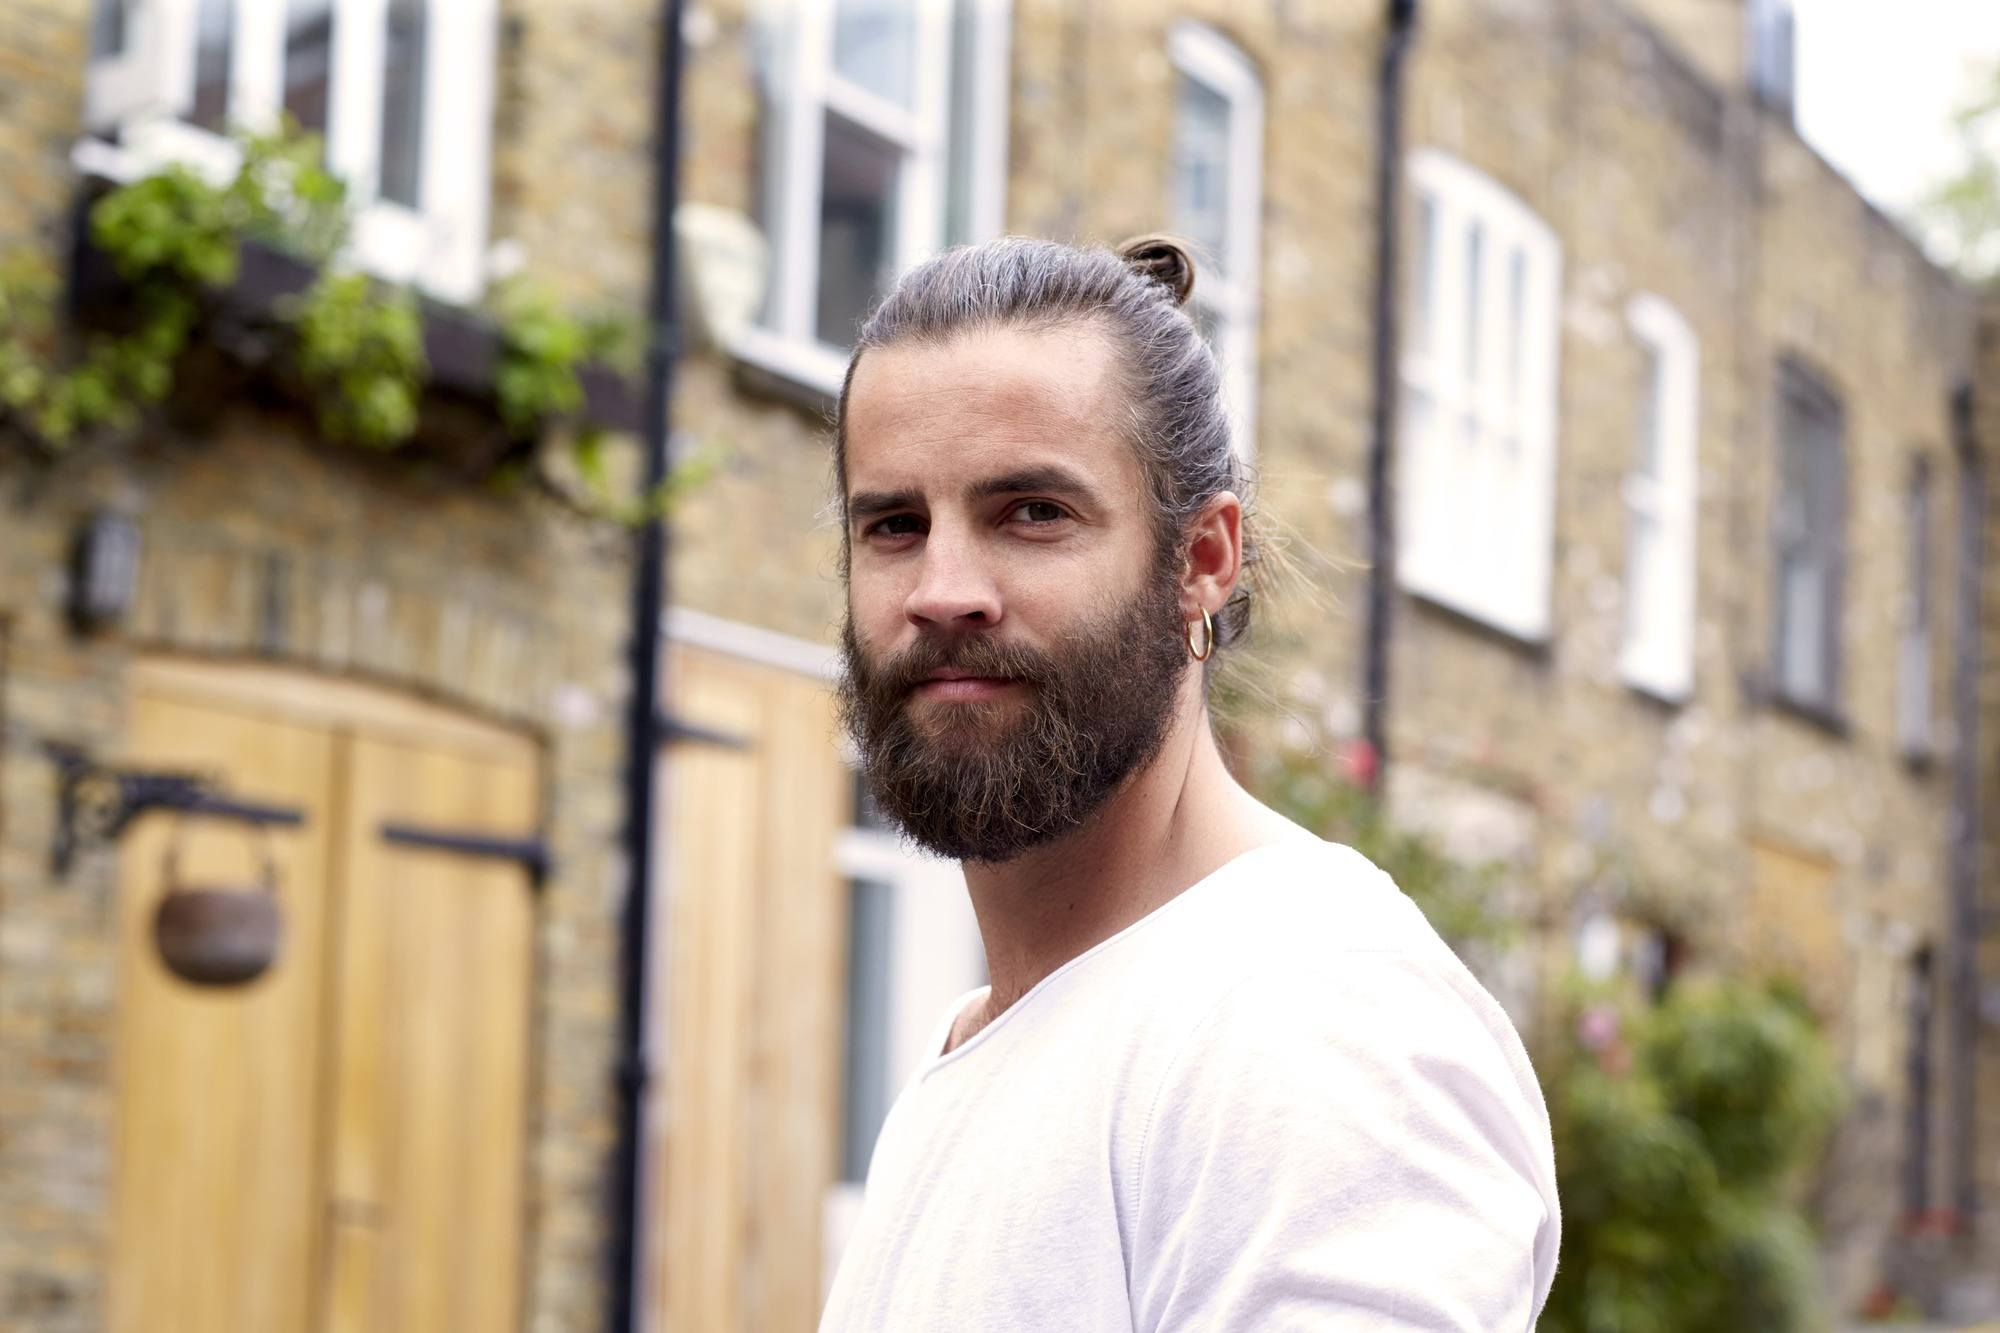 Male grooming: Dark haired man wearing a white T-shirt with man bun and large beard